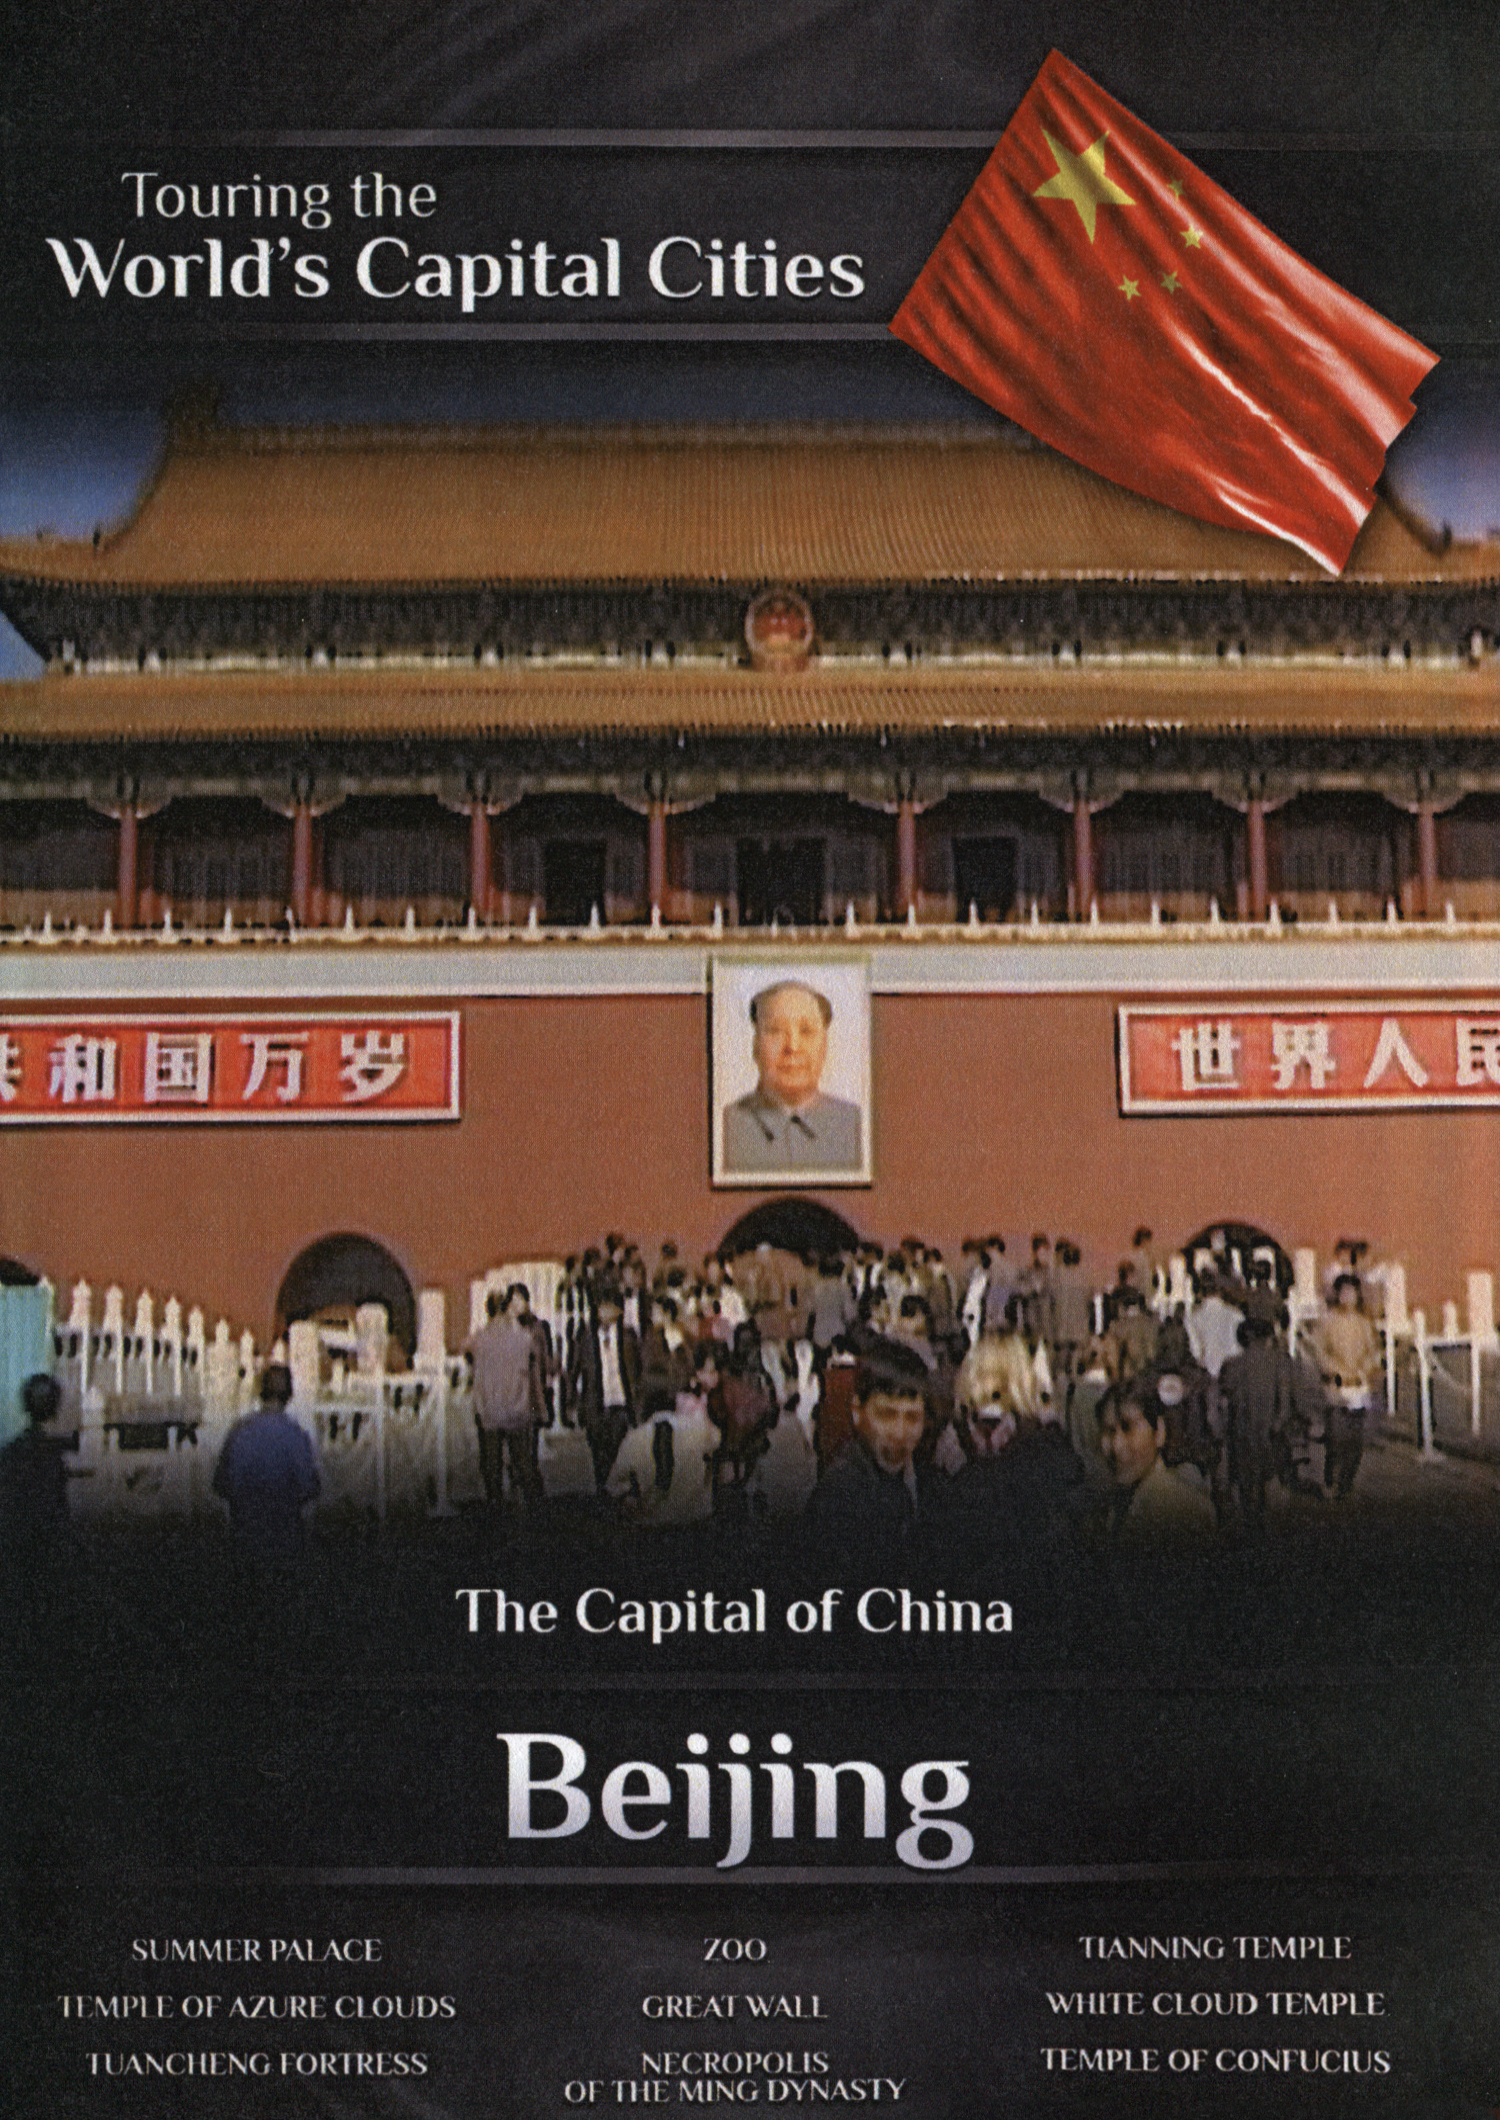 Touring the World's Capital Cities: The Capital of China - Beijing